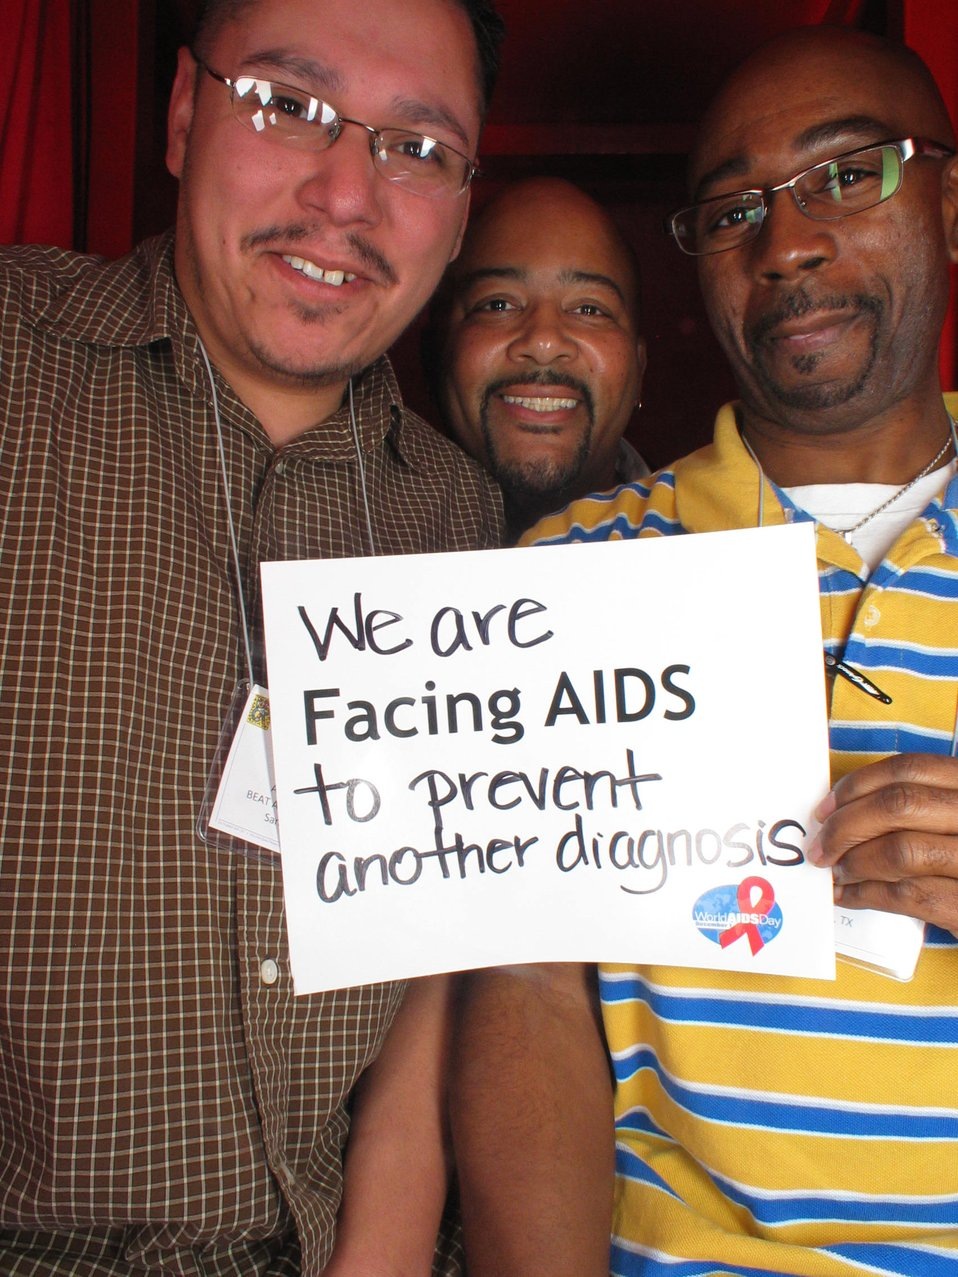 We are Facing AIDS to prevent another diagnosis